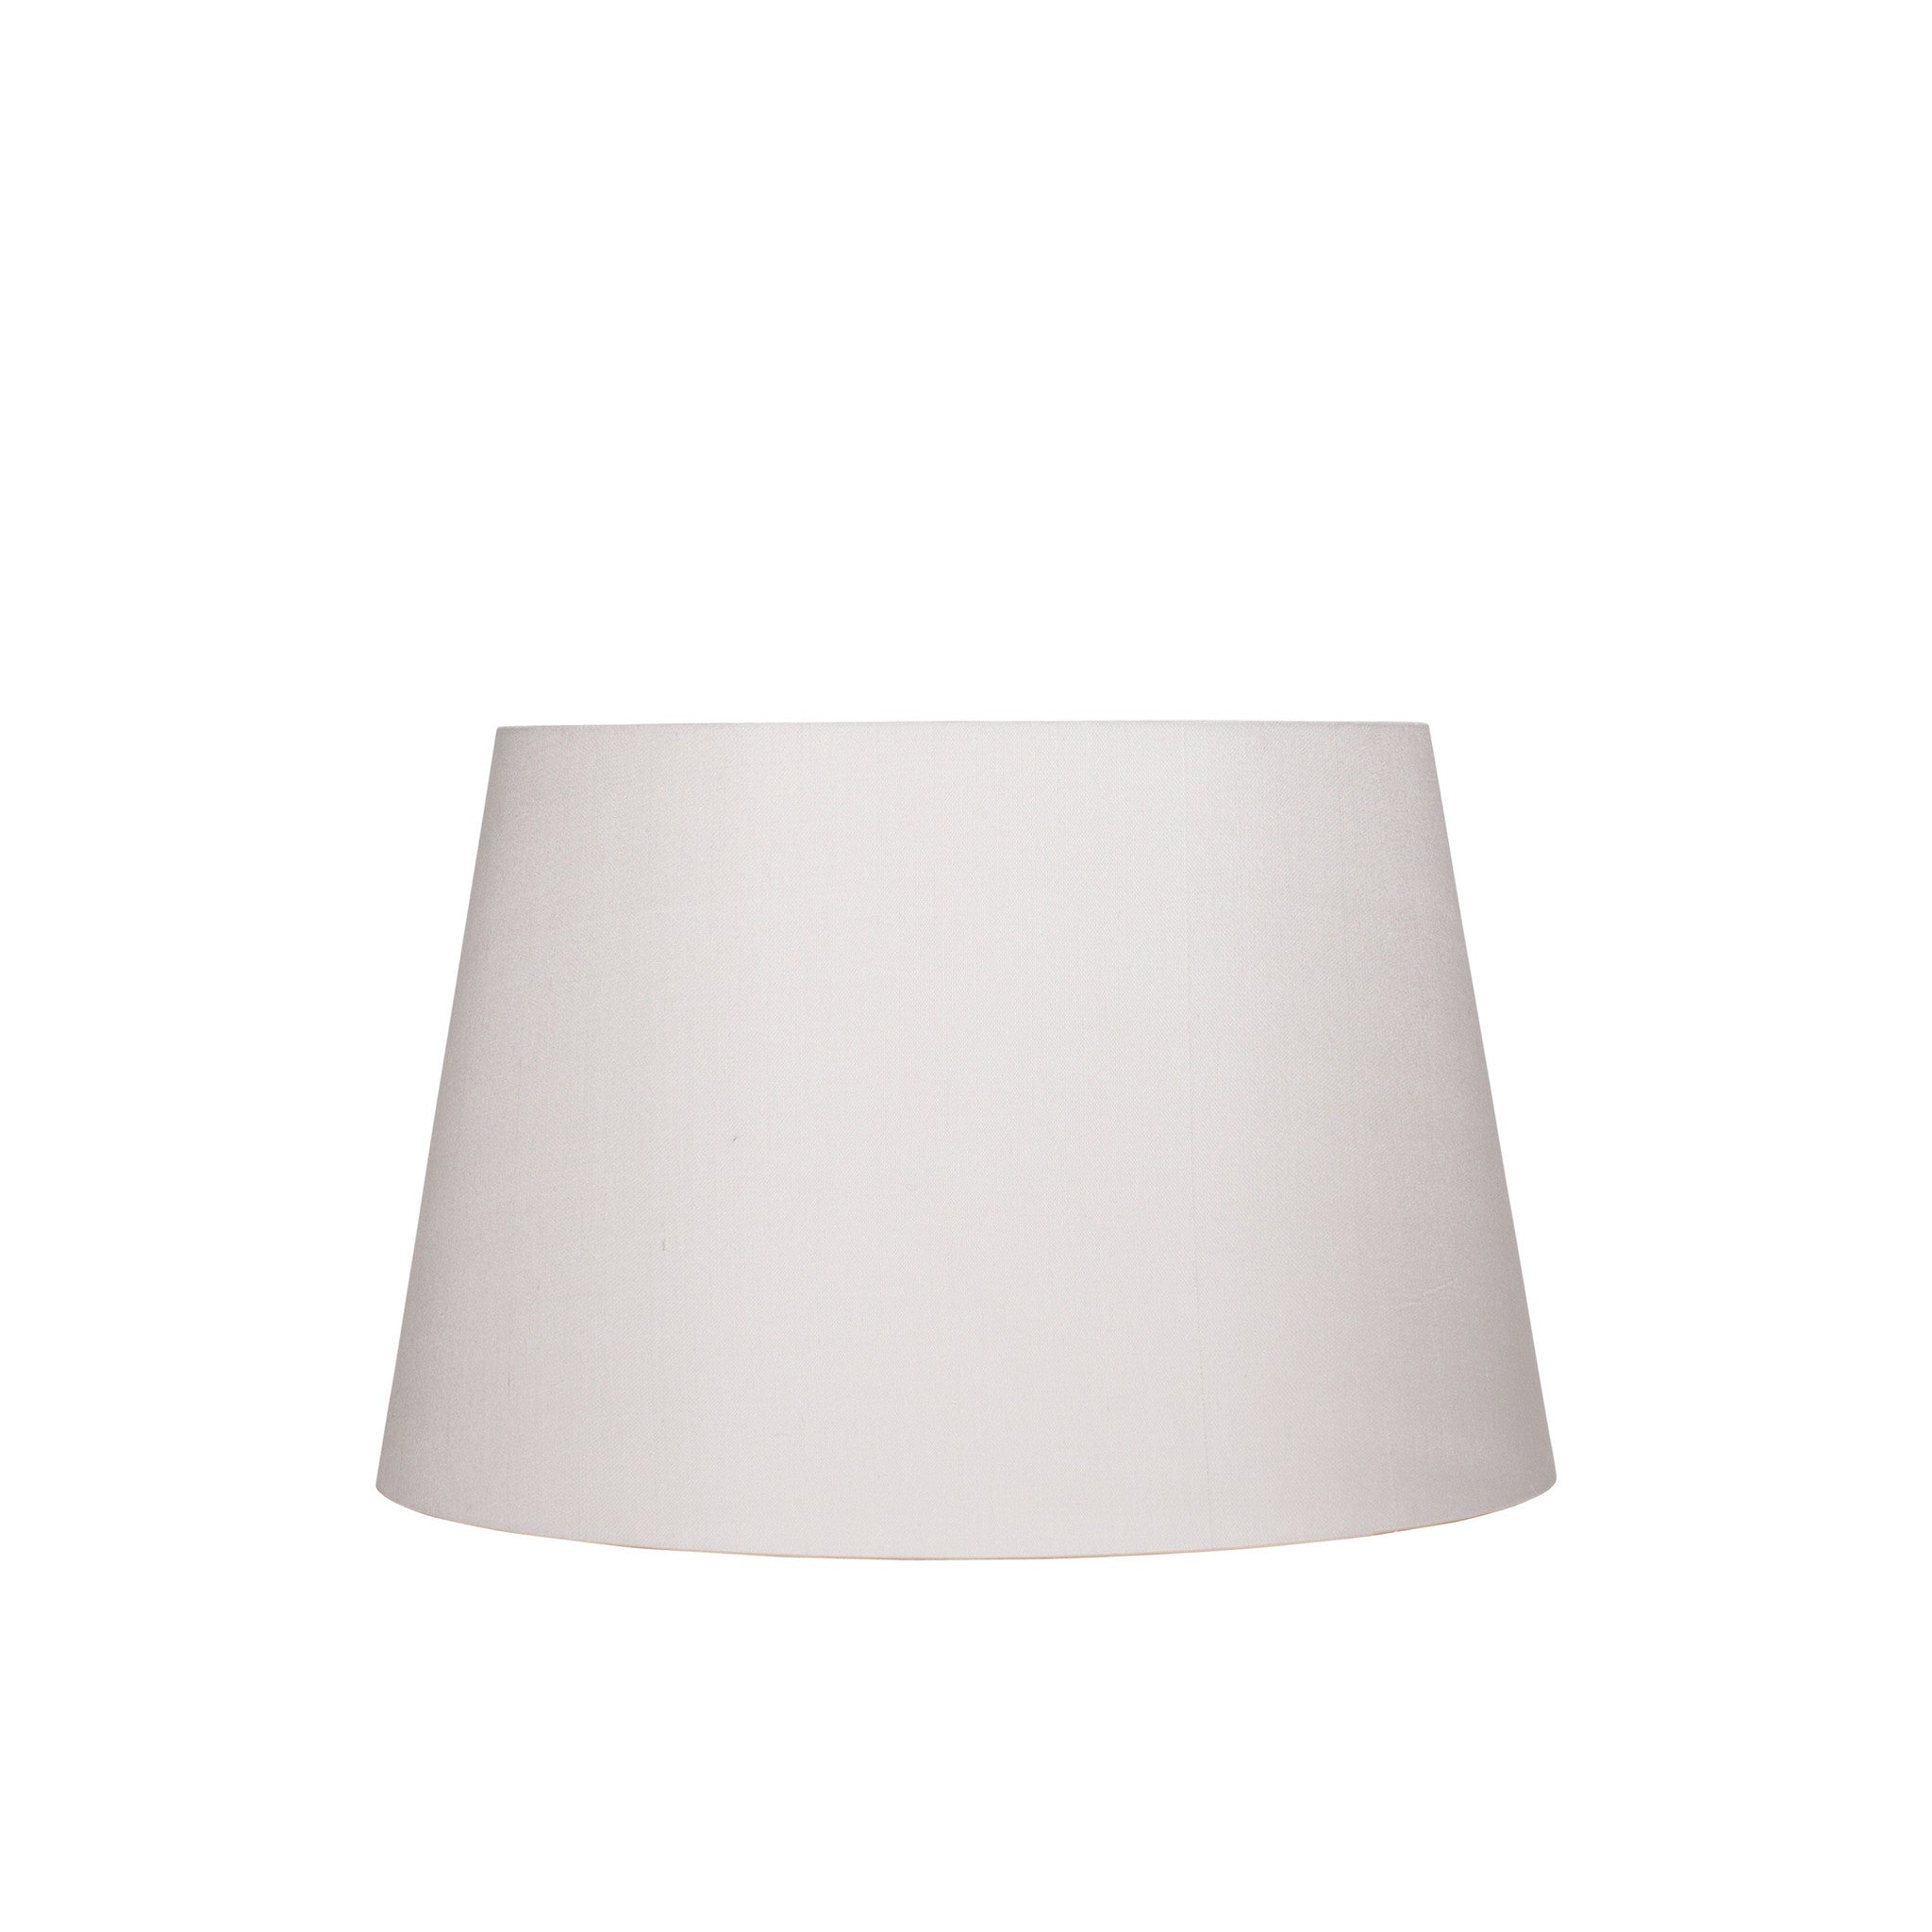 Medium stretched silk lampshade in ivory